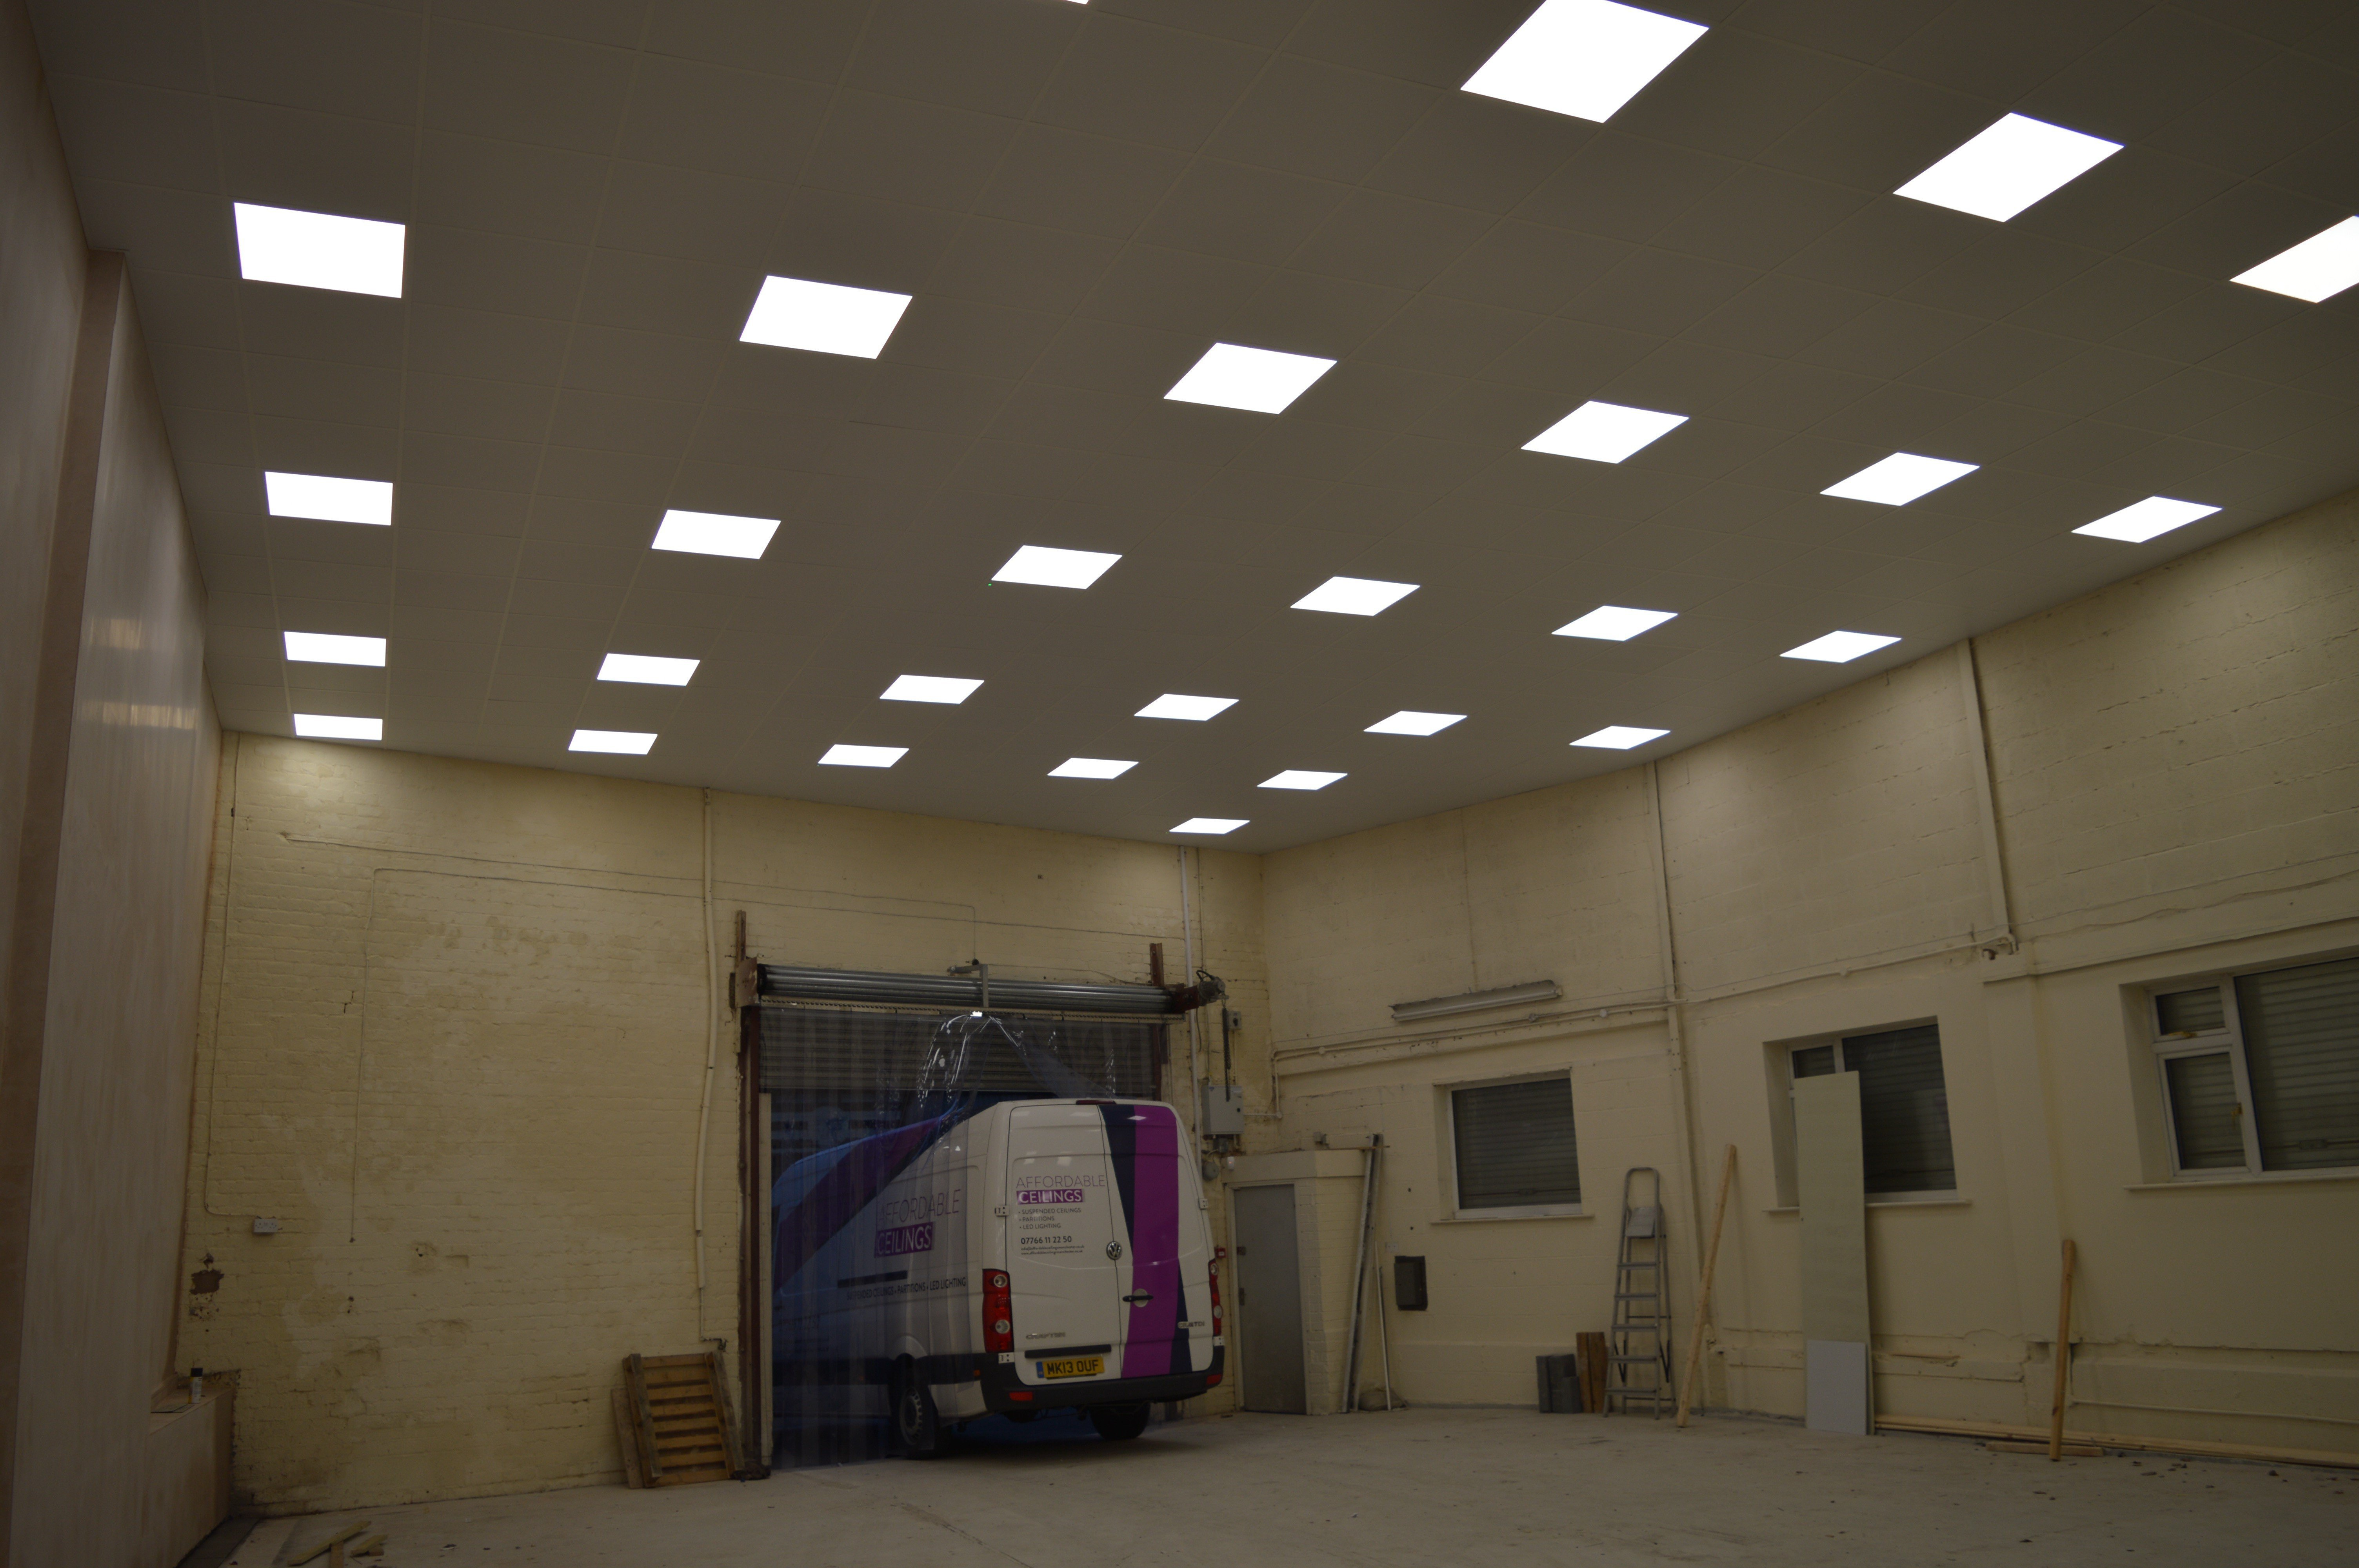 Lights in a suspended ceiling